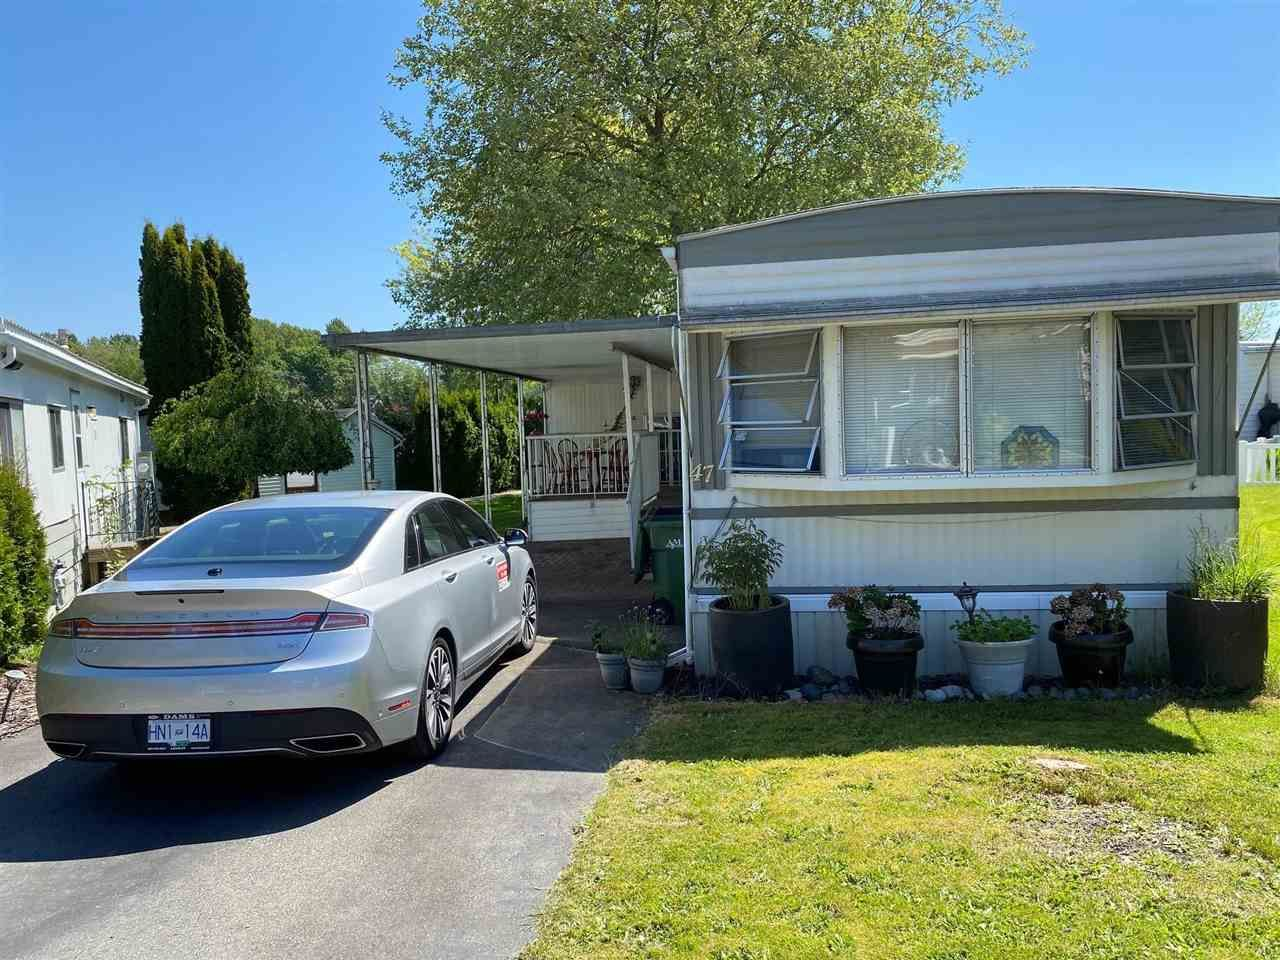 """Main Photo: 47 1840 160 Street in Surrey: King George Corridor Manufactured Home for sale in """"Breakaway Bays"""" (South Surrey White Rock)  : MLS®# R2580835"""